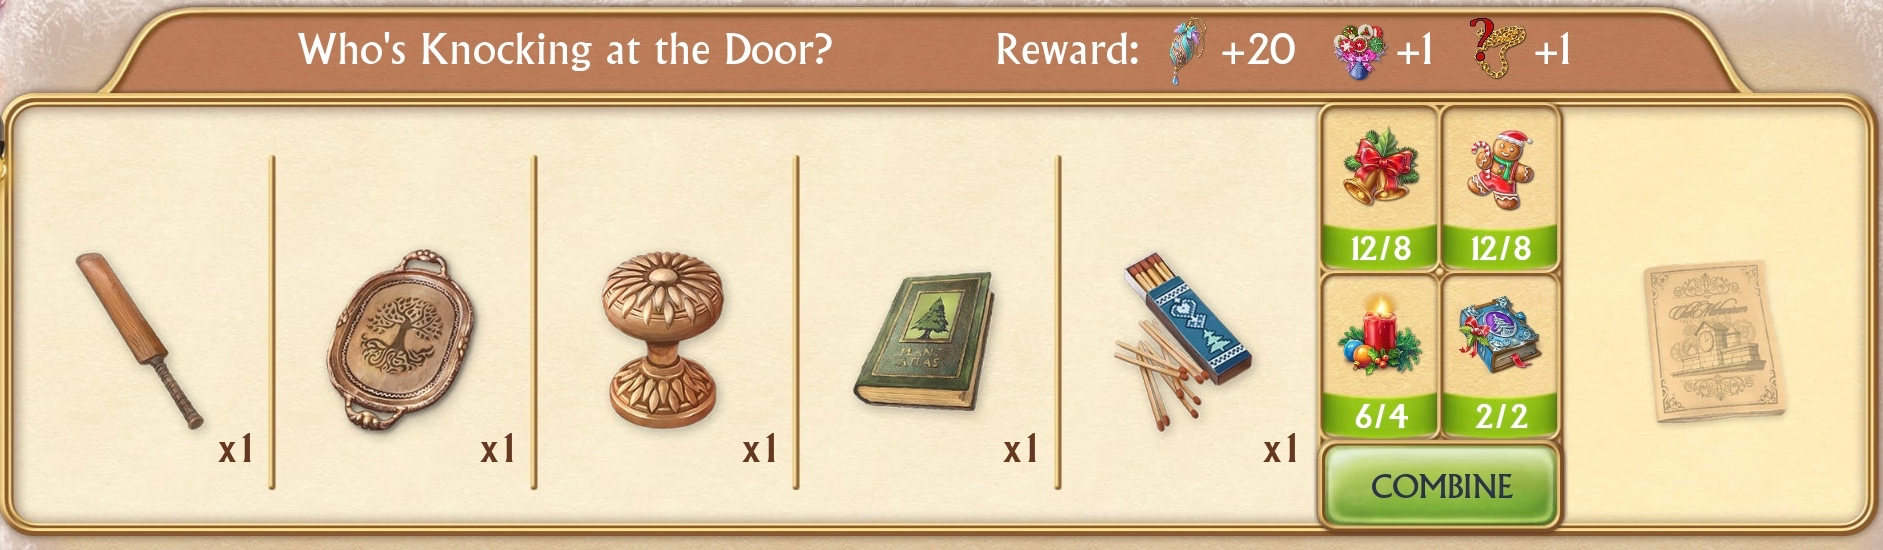 Seekers Notes: Who's Knocking at the Door Collection – Book